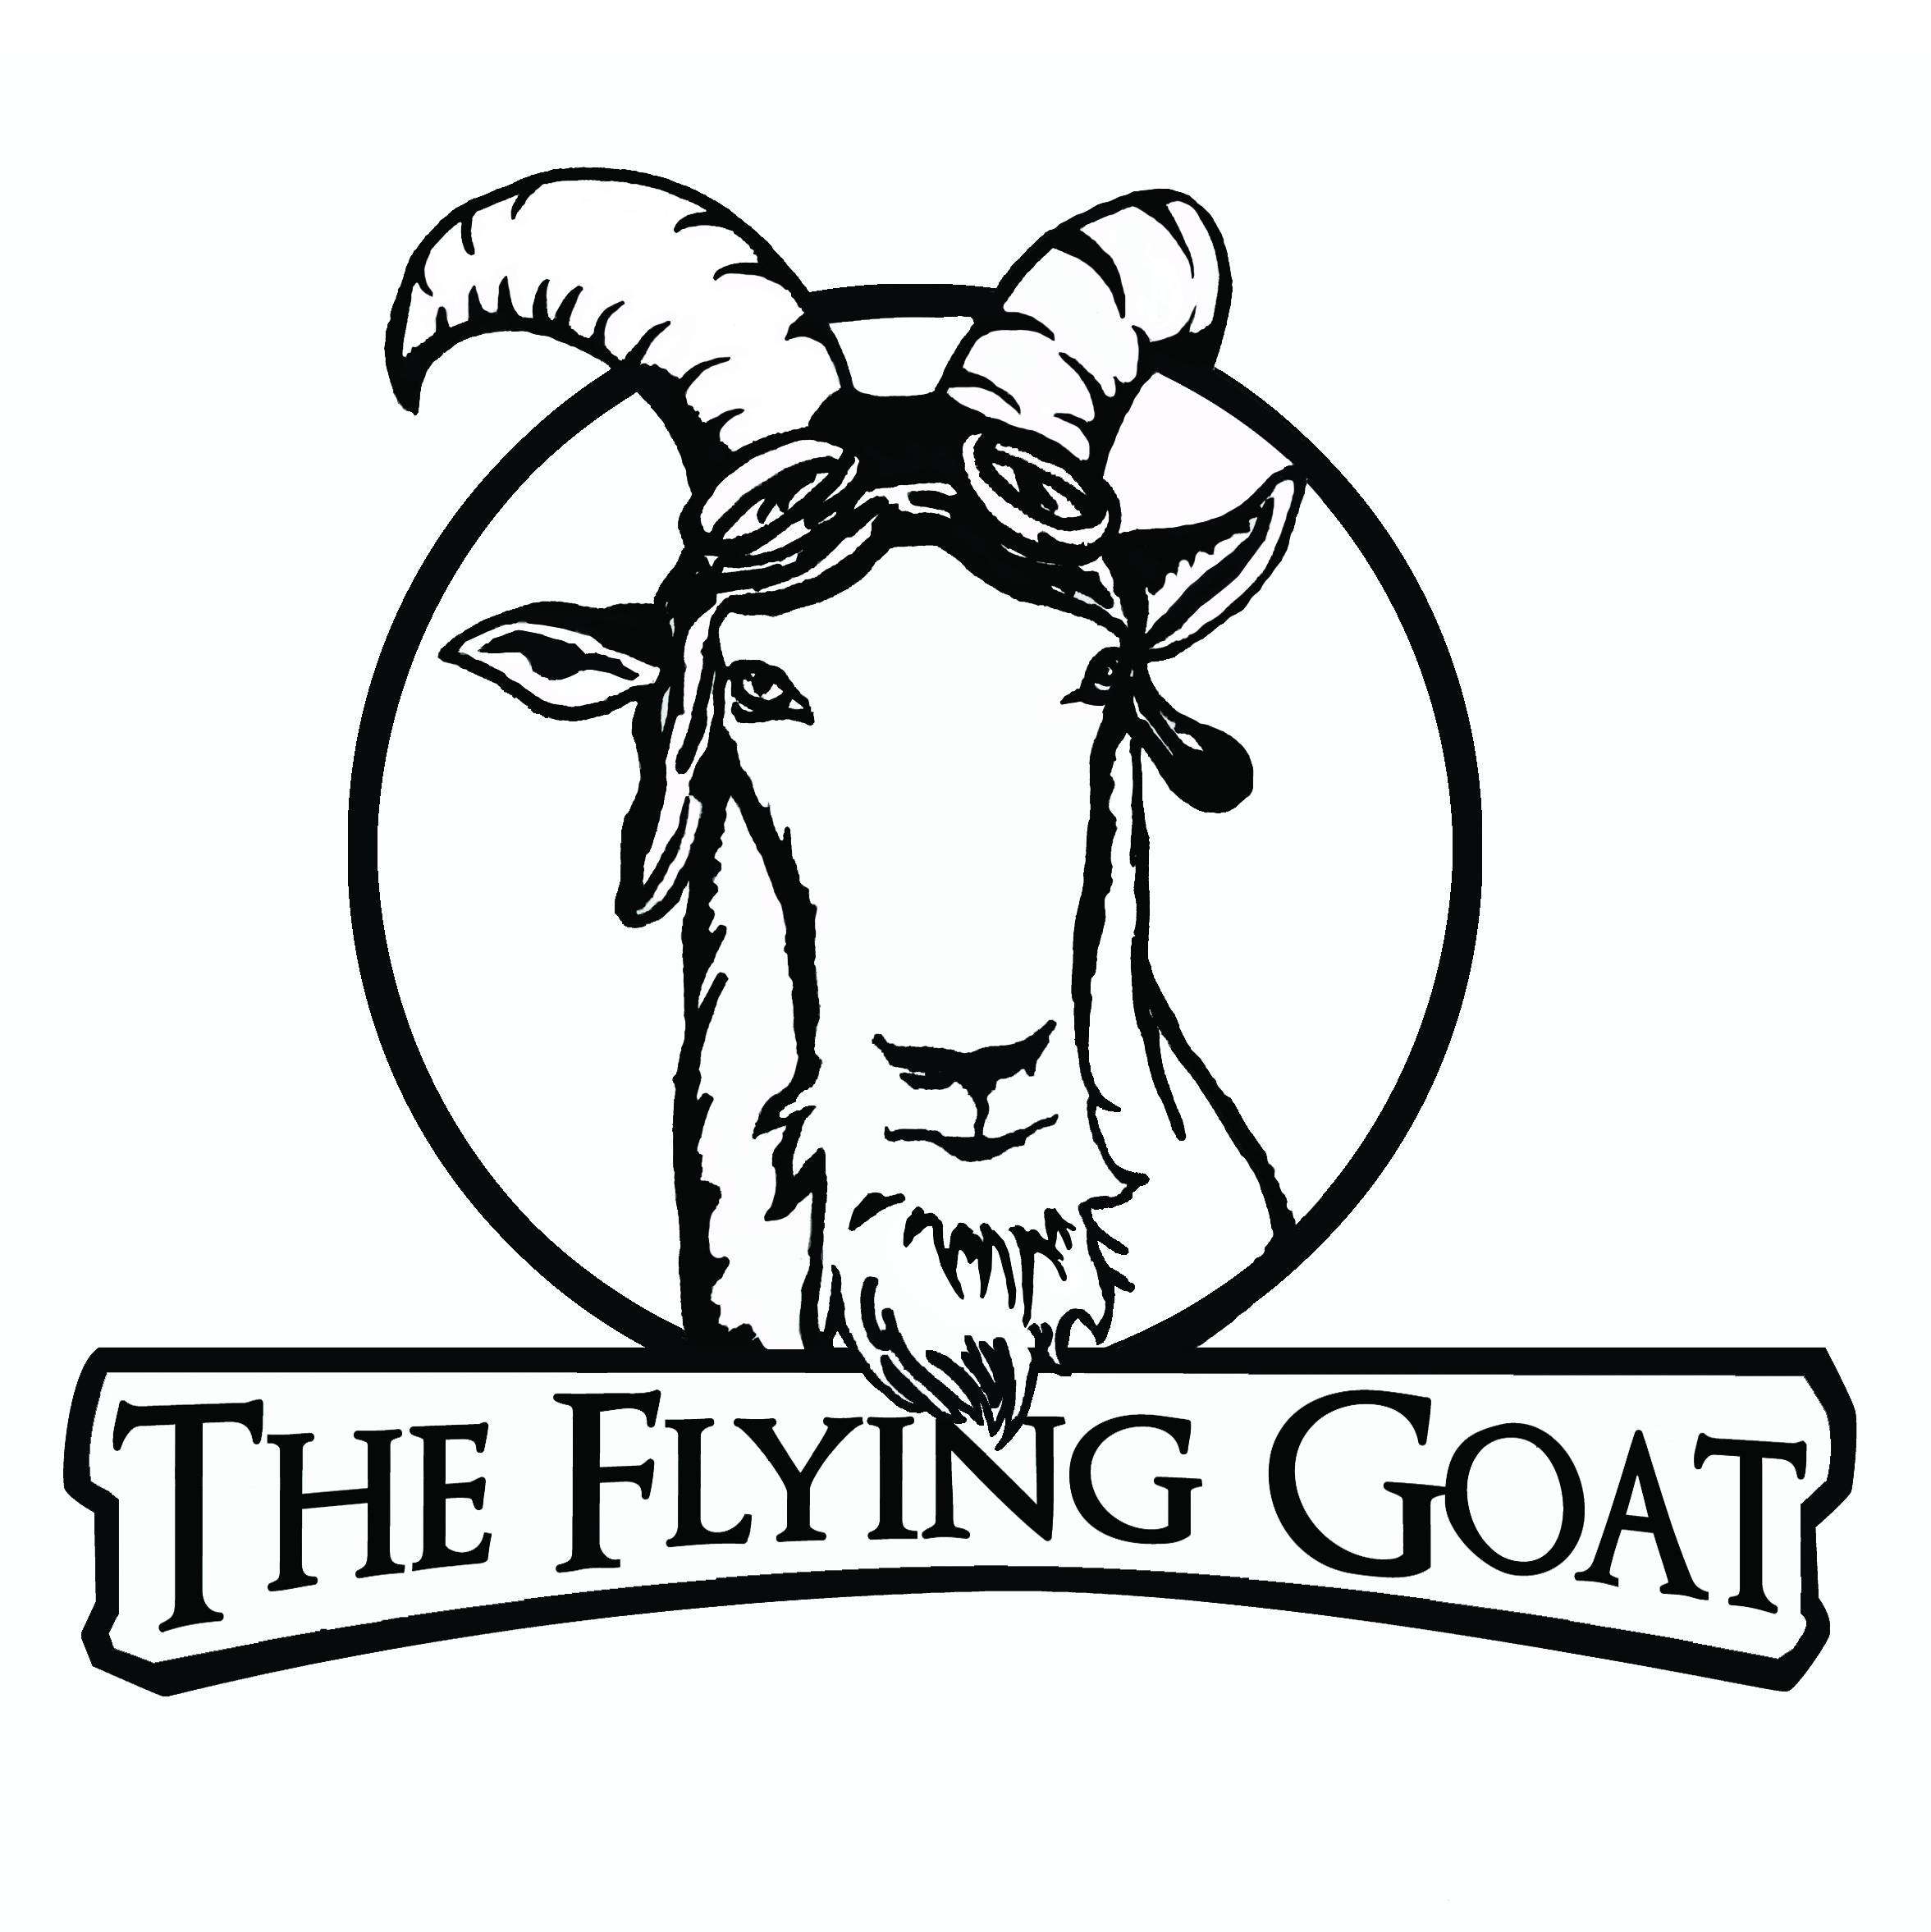 The_Flying_Goat_logo flat.jpg